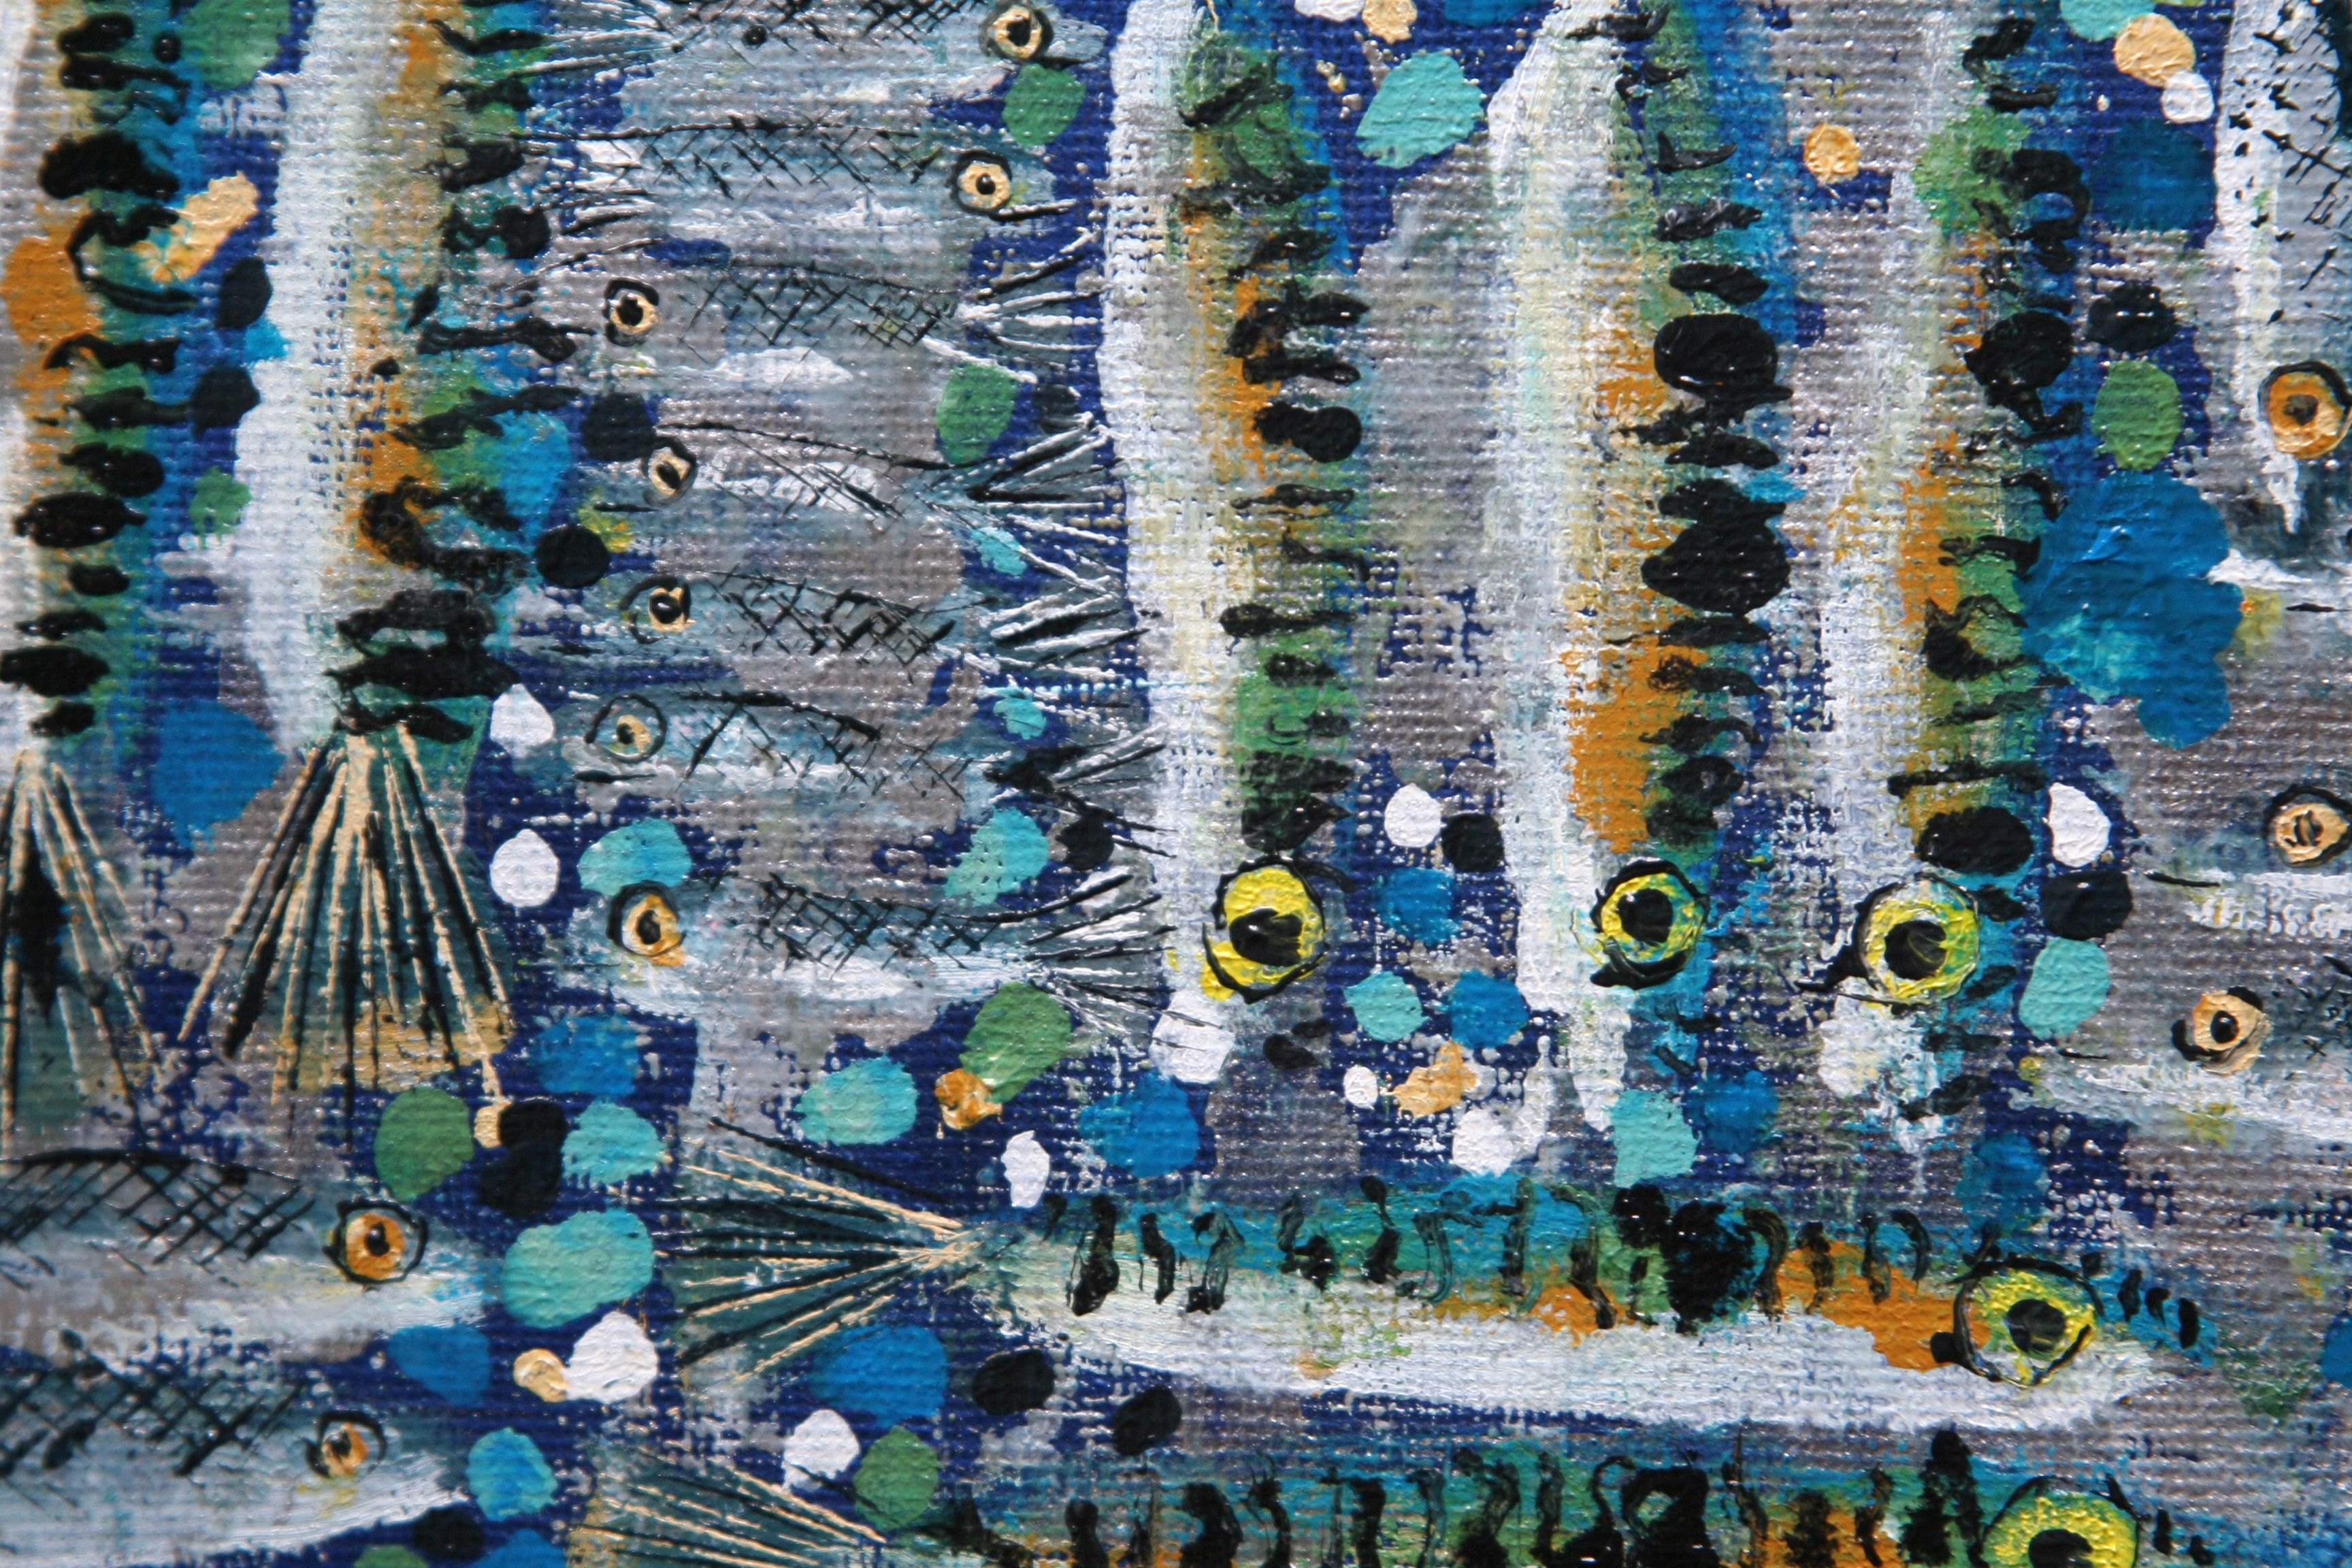 sardines_and_mackerel_detail